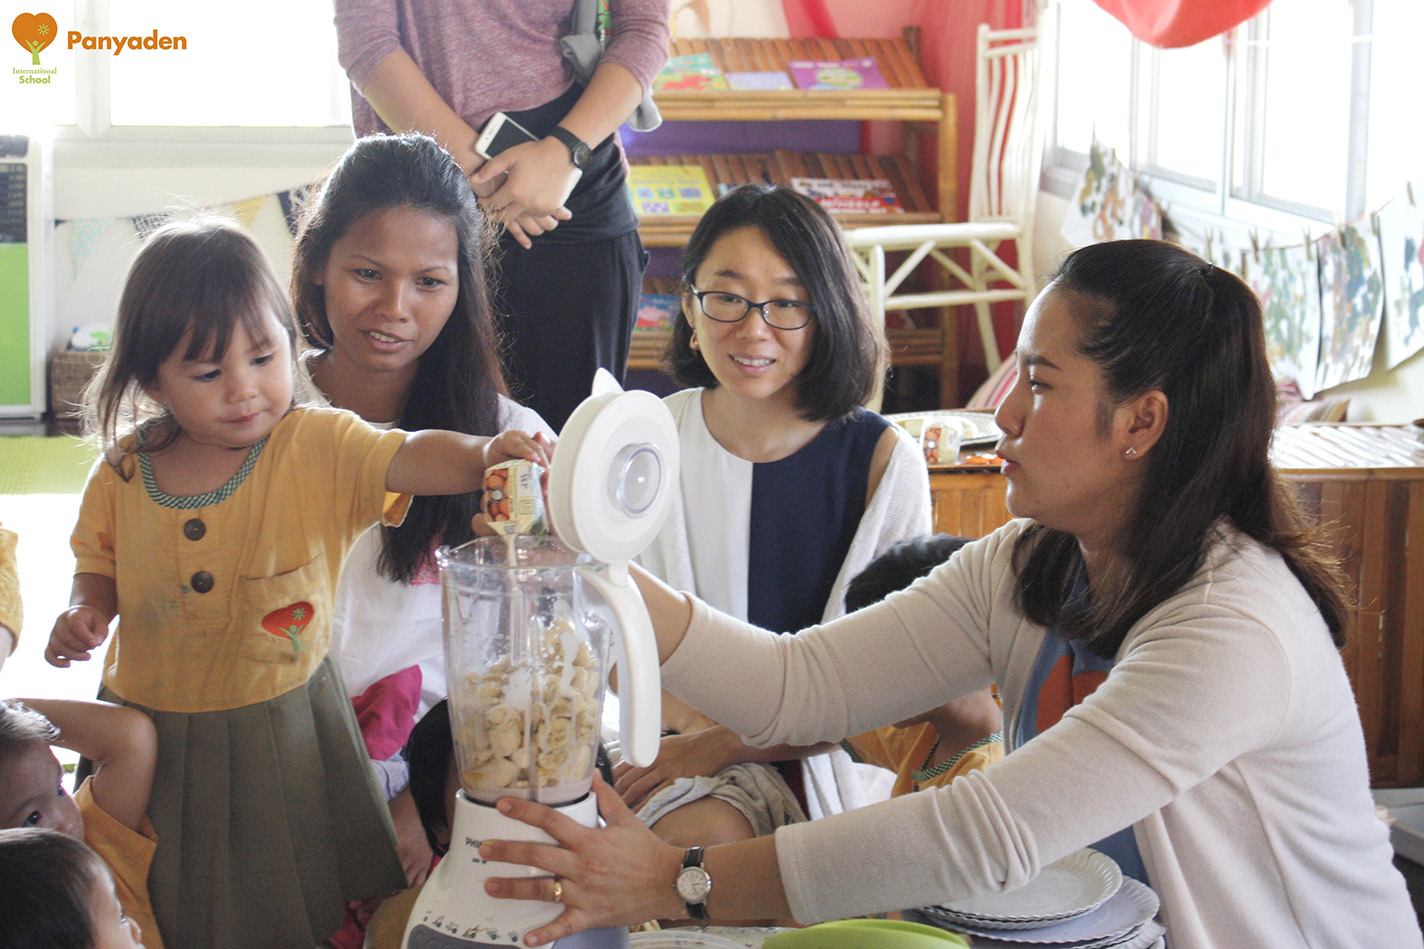 Panyaden Budding Day 1 - student shows parents how to make healthy juice